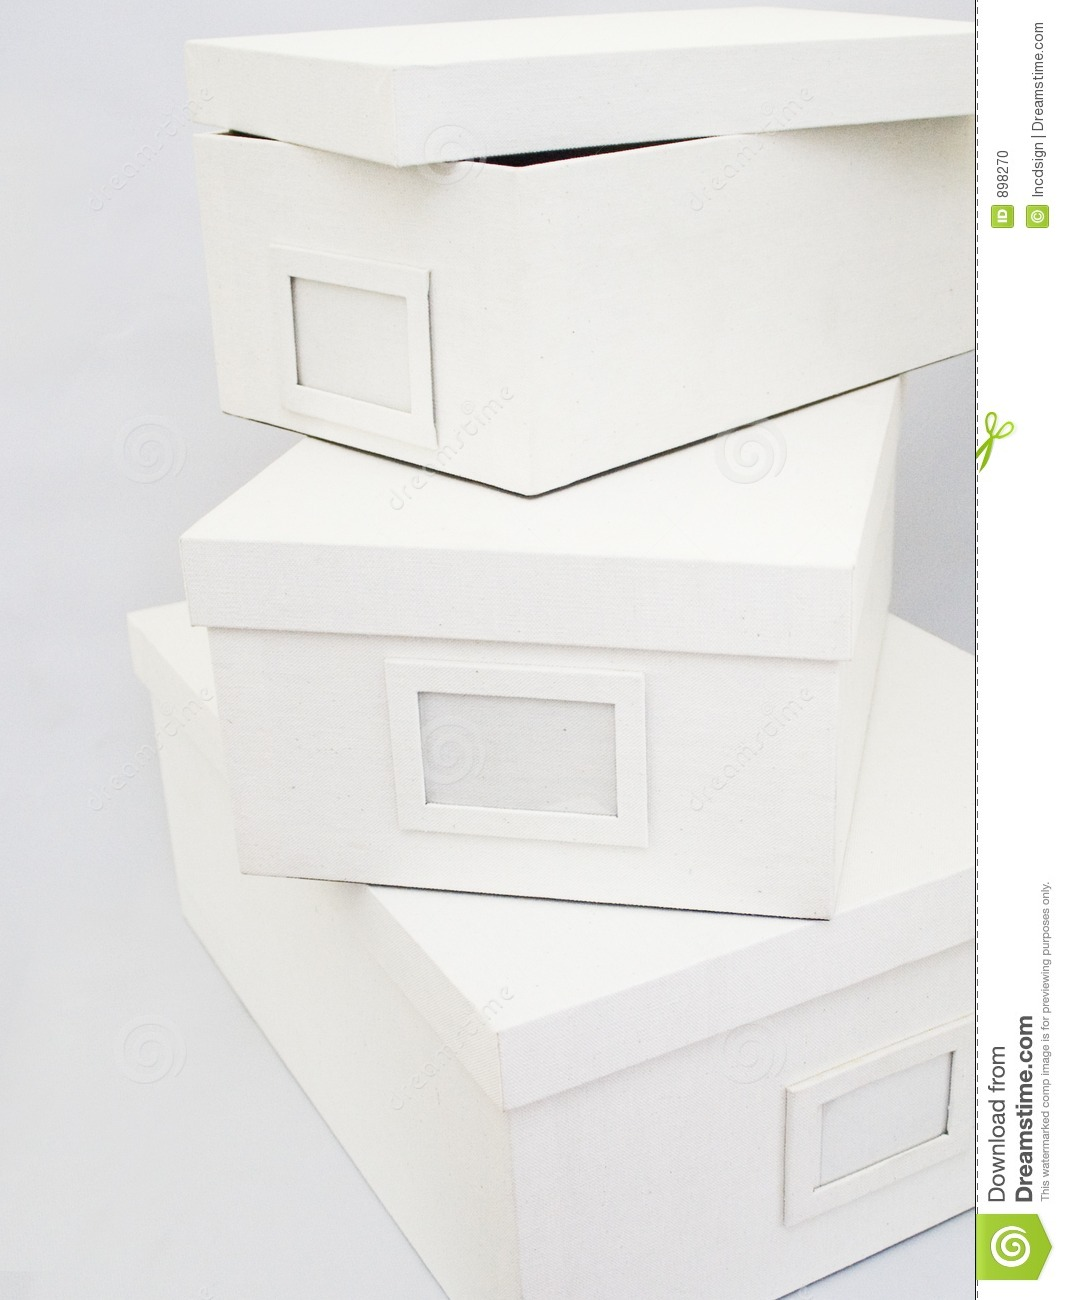 Charmant Download Linen Storage Boxes Stock Photo. Image Of White, Filing   898270